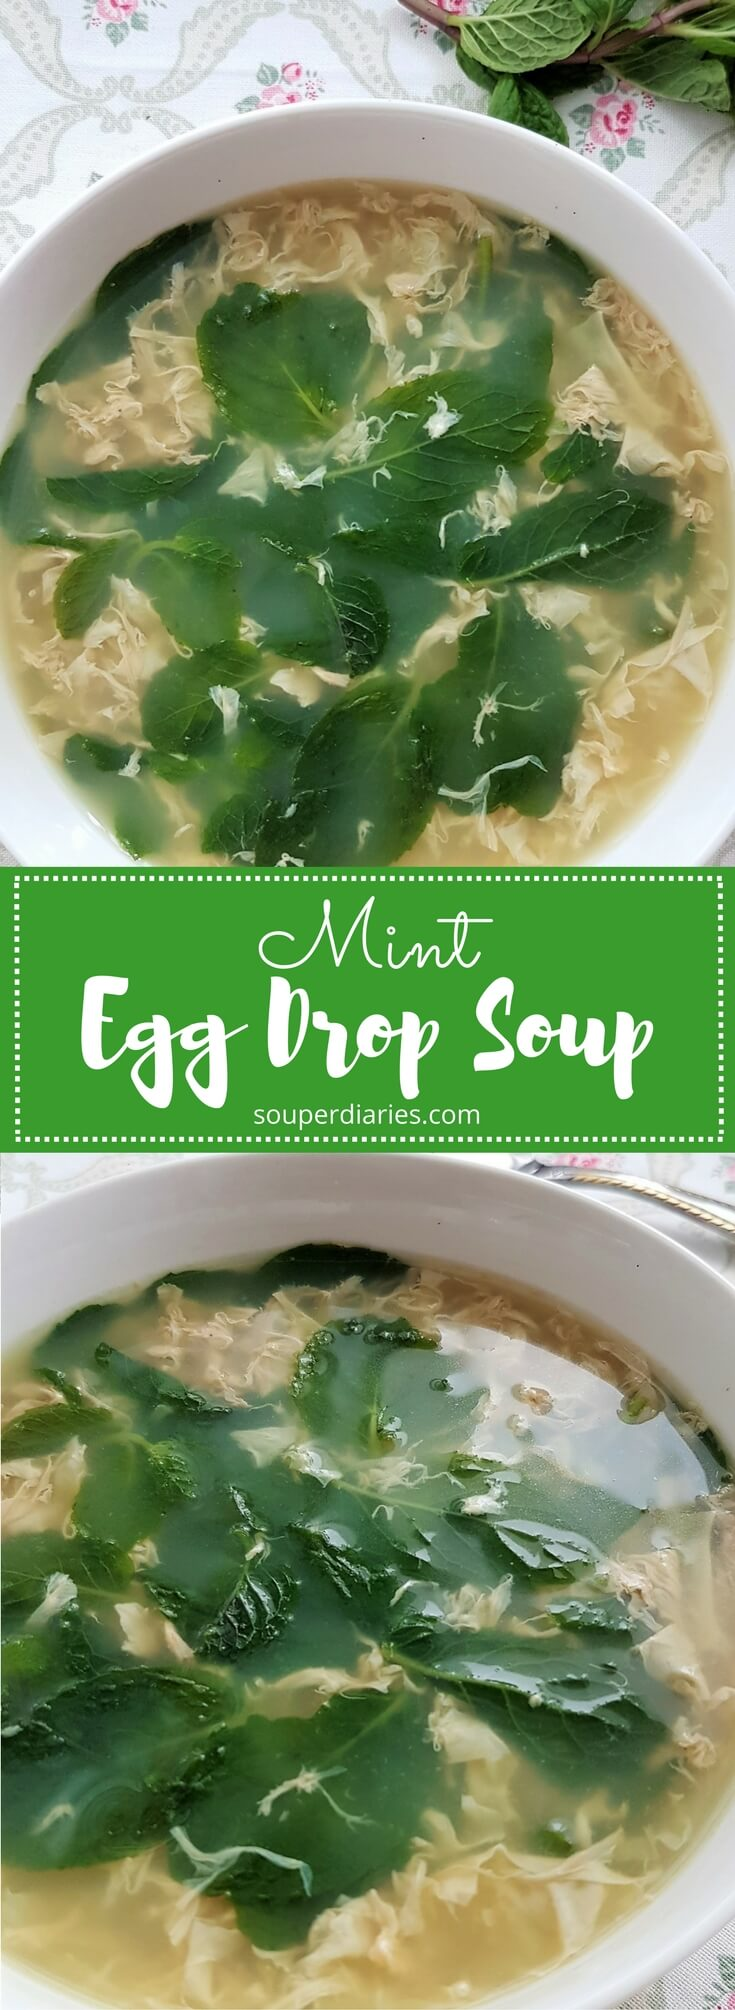 Simple egg drop soup recipe with mint